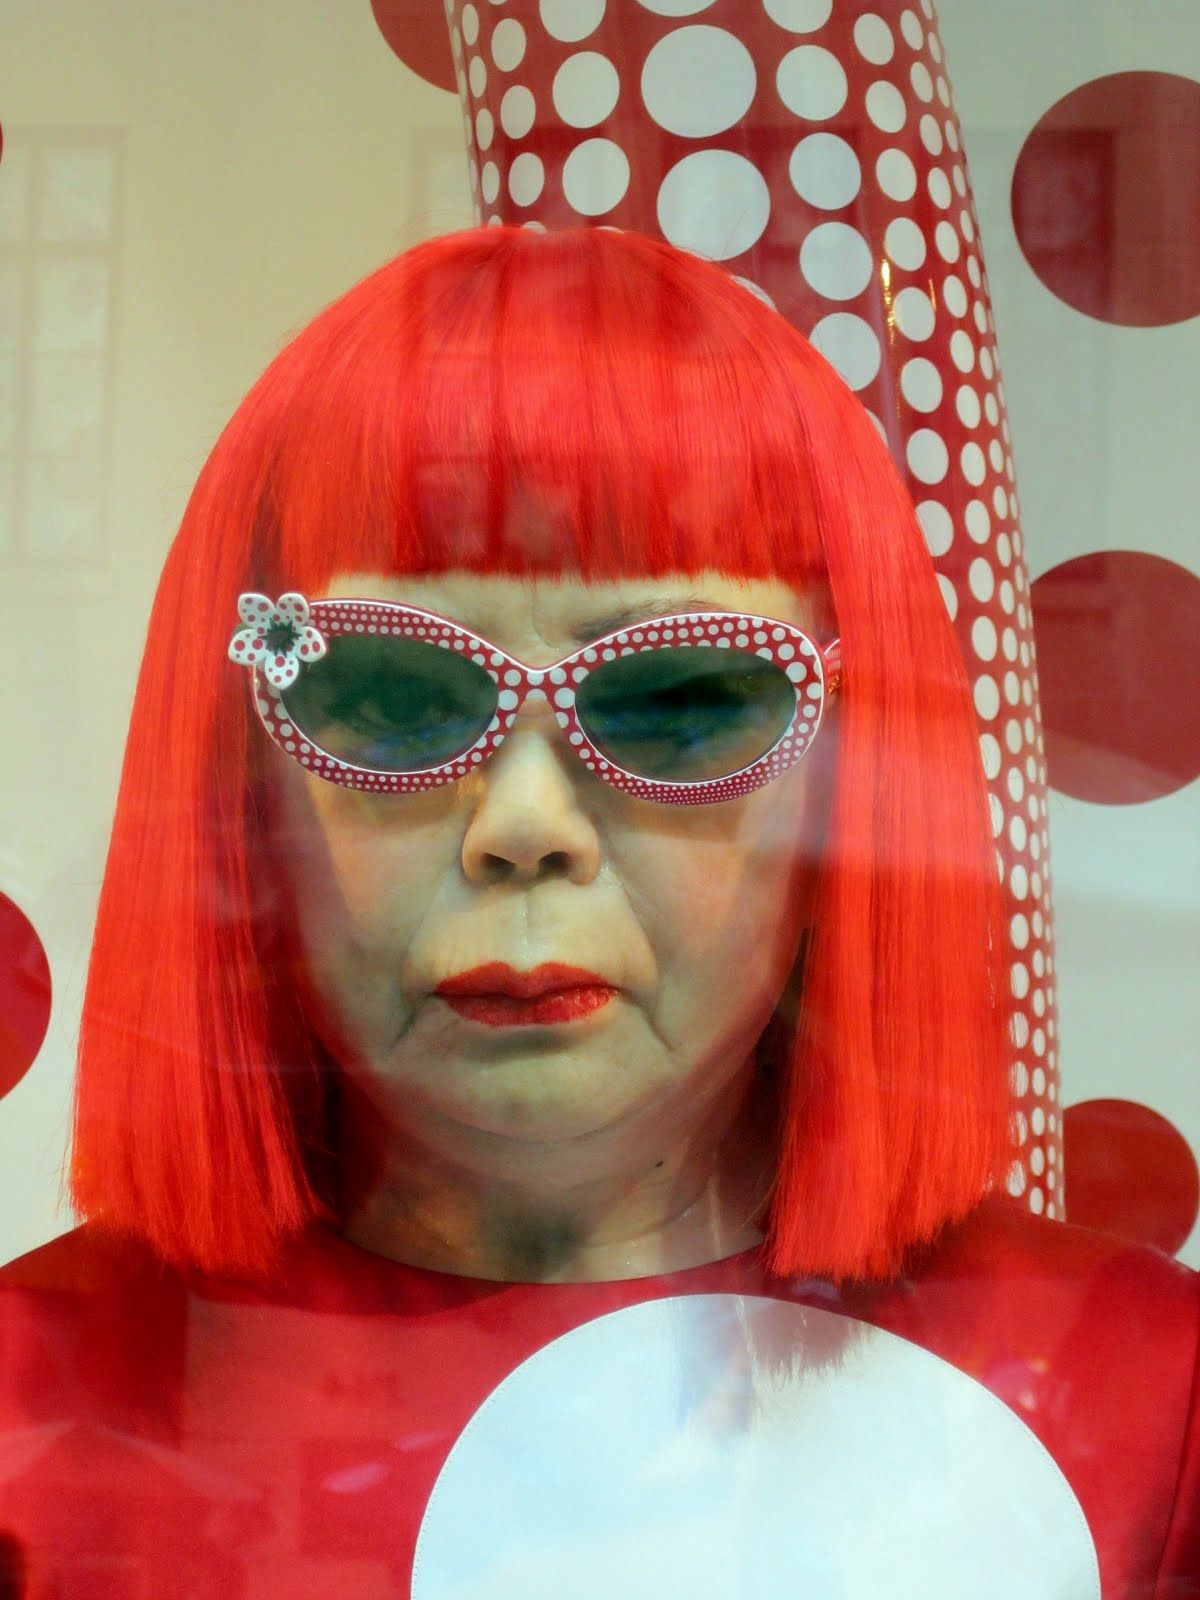 After marveling at yayoi kusamas exhibition at the